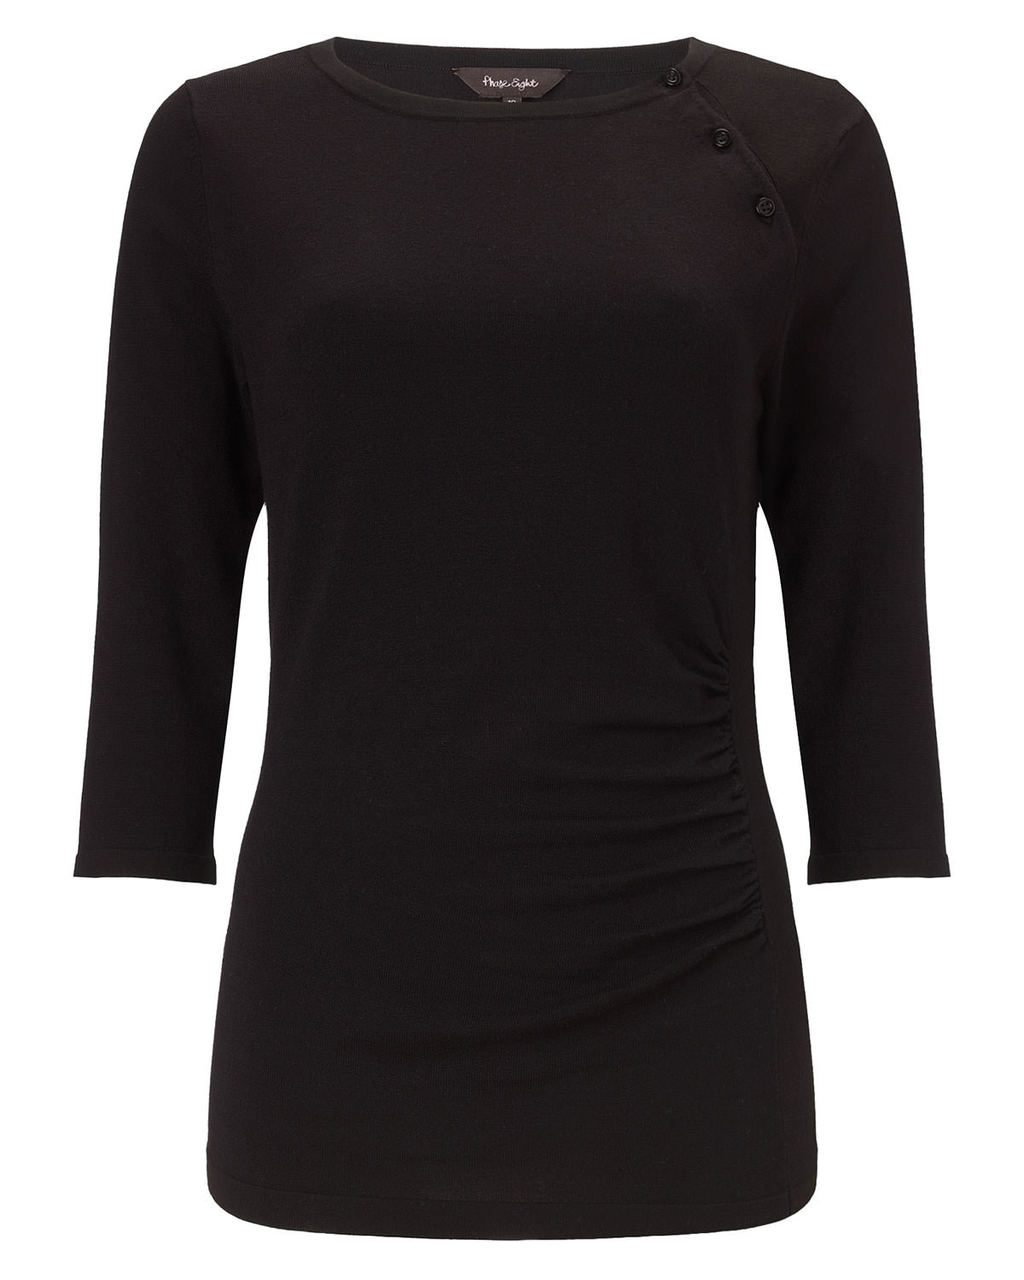 Bianka Button Knit Top - pattern: plain; predominant colour: black; occasions: casual; length: standard; style: top; fit: body skimming; neckline: crew; sleeve length: 3/4 length; sleeve style: standard; pattern type: fabric; texture group: jersey - stretchy/drapey; fibres: viscose/rayon - mix; season: a/w 2015; wardrobe: basic